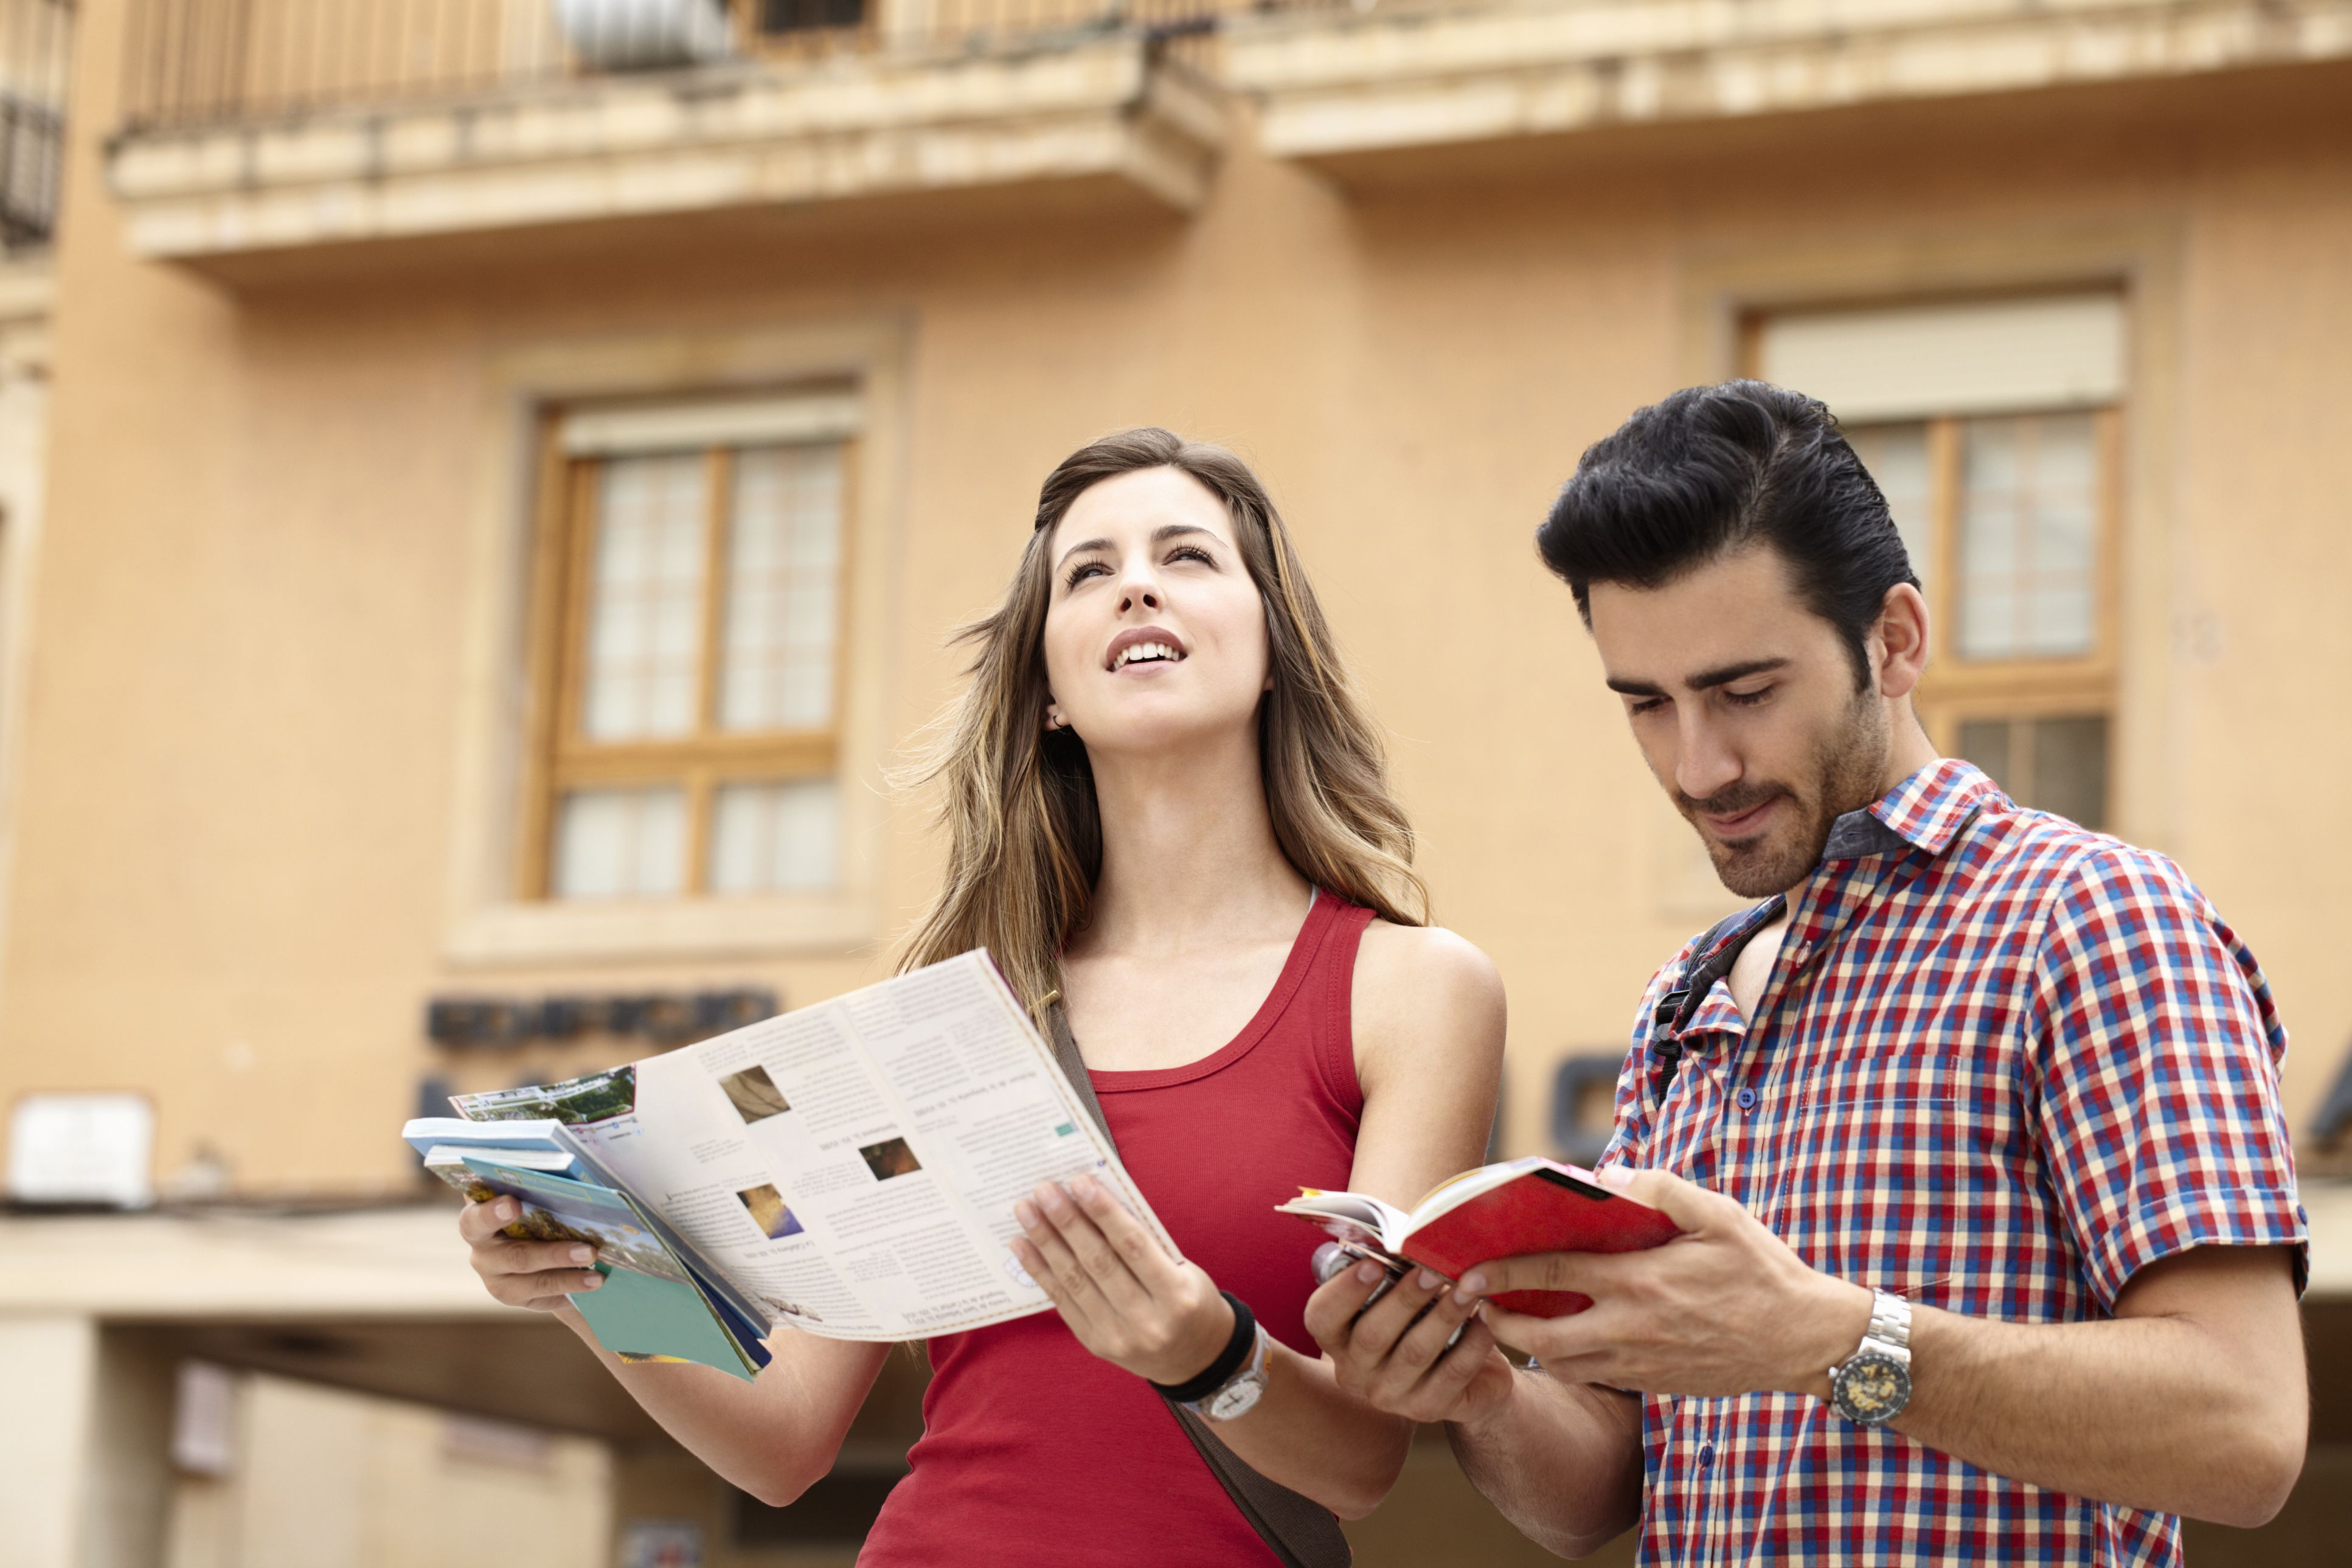 Man and woman looking at a map and touring guidebook